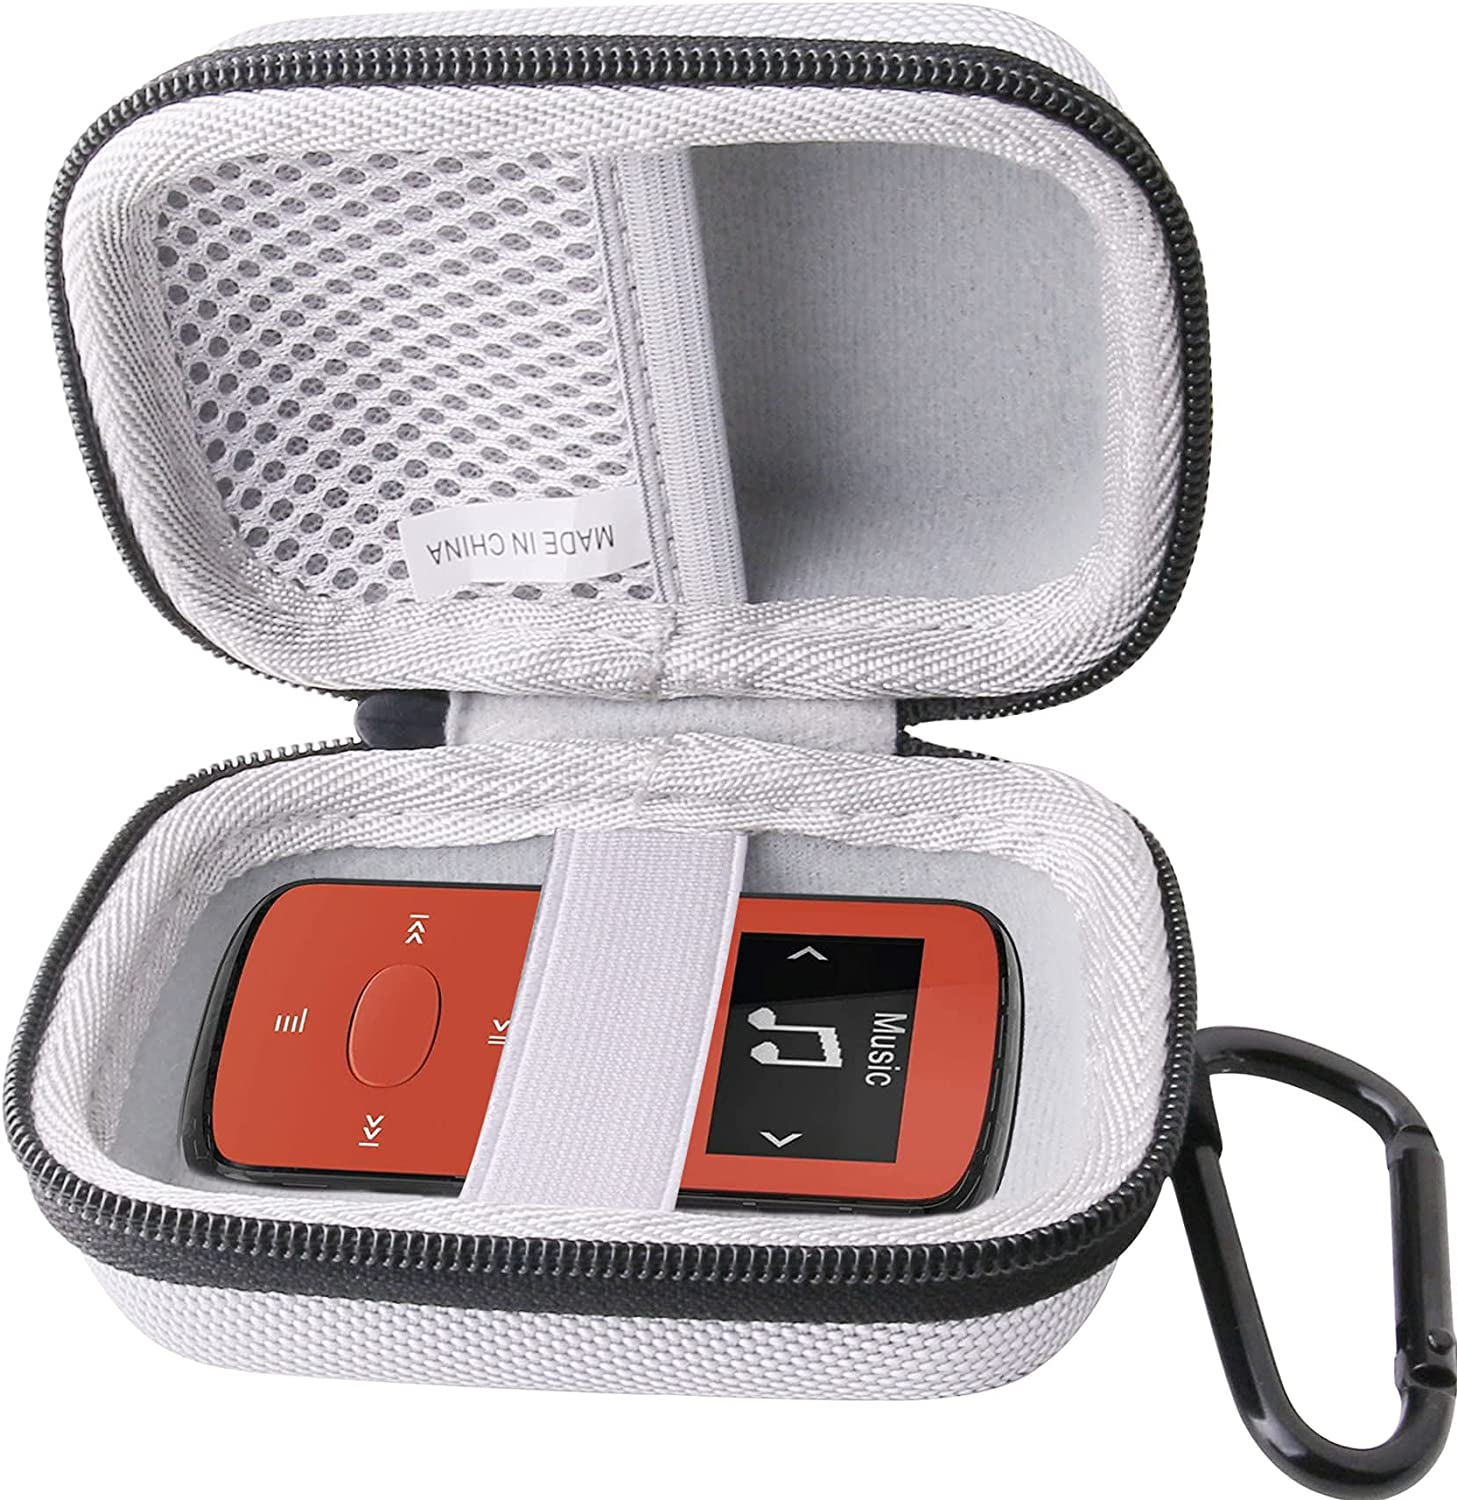 waiyu Hard EVA Travel Case for SanDisk Clip 8GB Jam MP Cheap Omaha Mall mail order specialty store 16GB 32GB